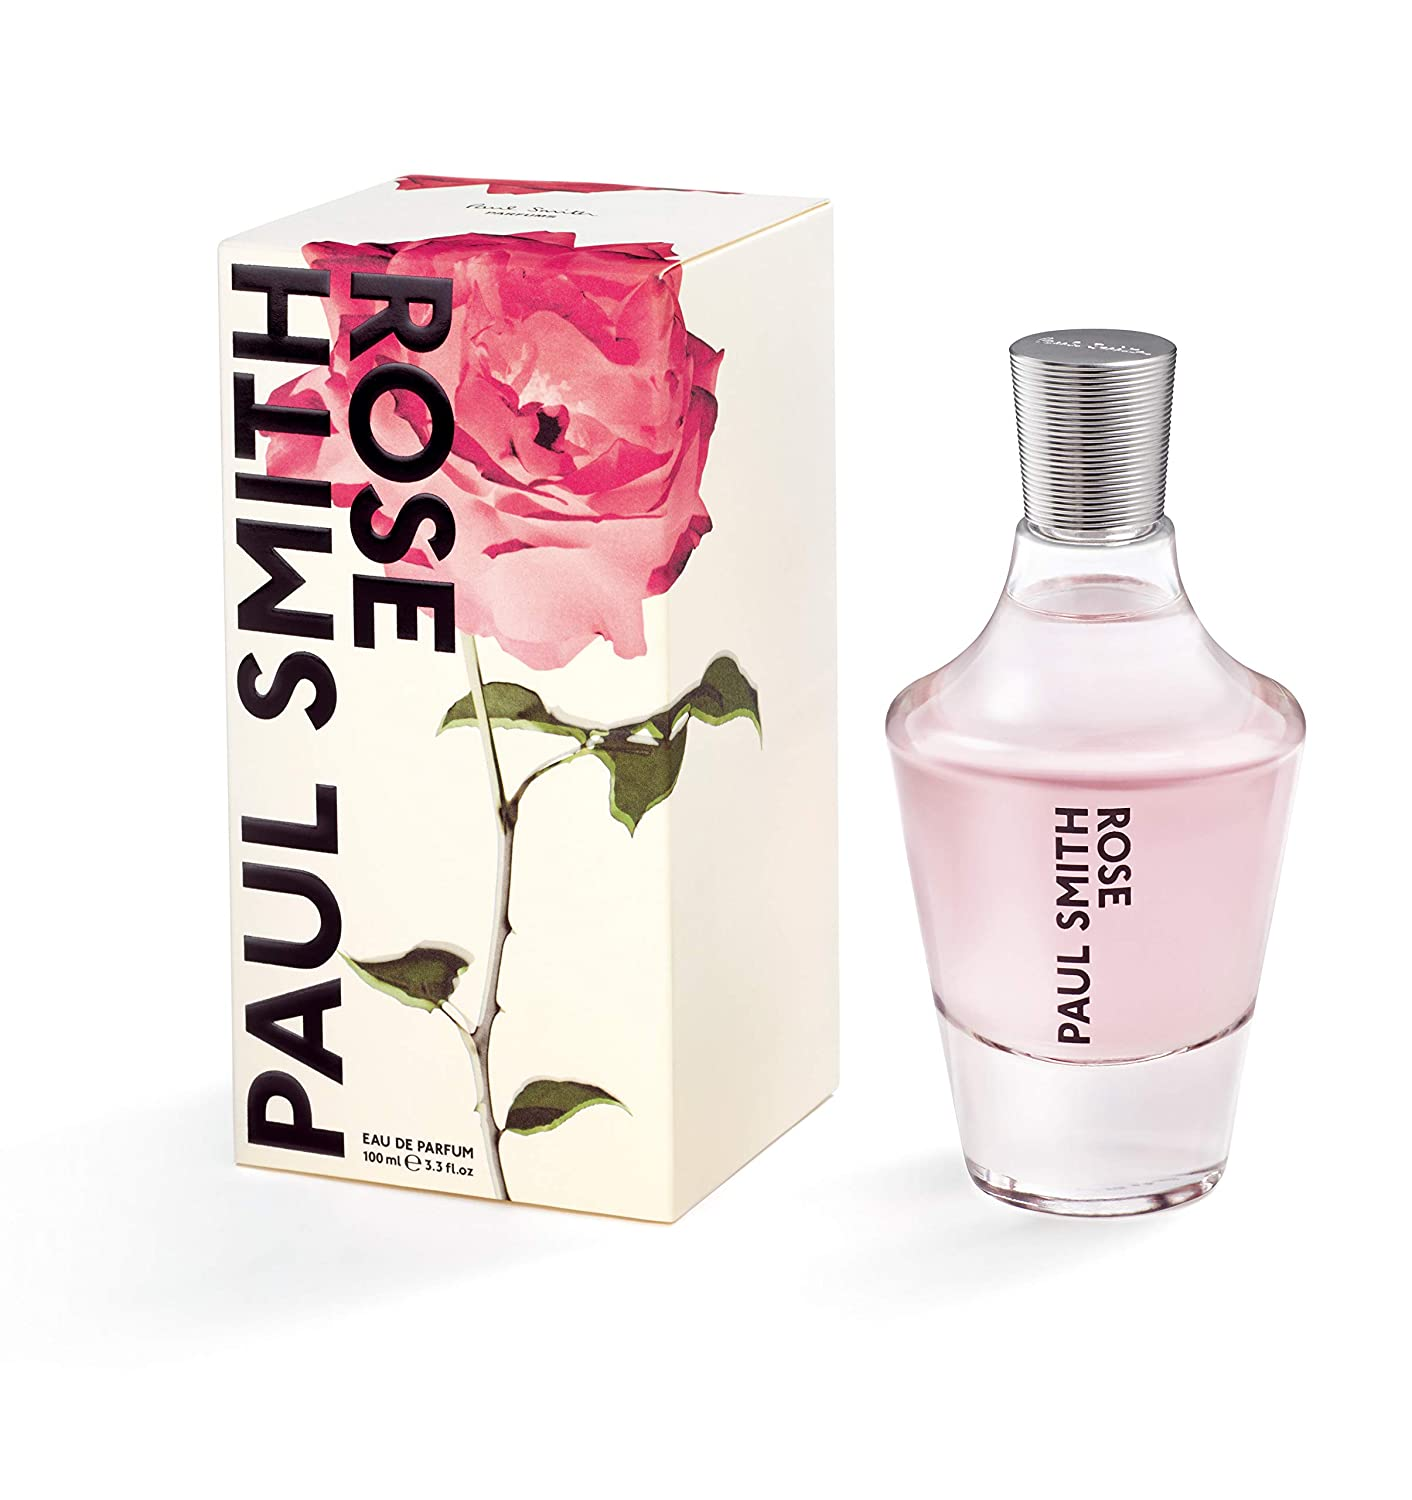 Paul Smith Rose By Paul Smith For Women. Eau De Parfum Spray 3.3 Oz / 100 Ml